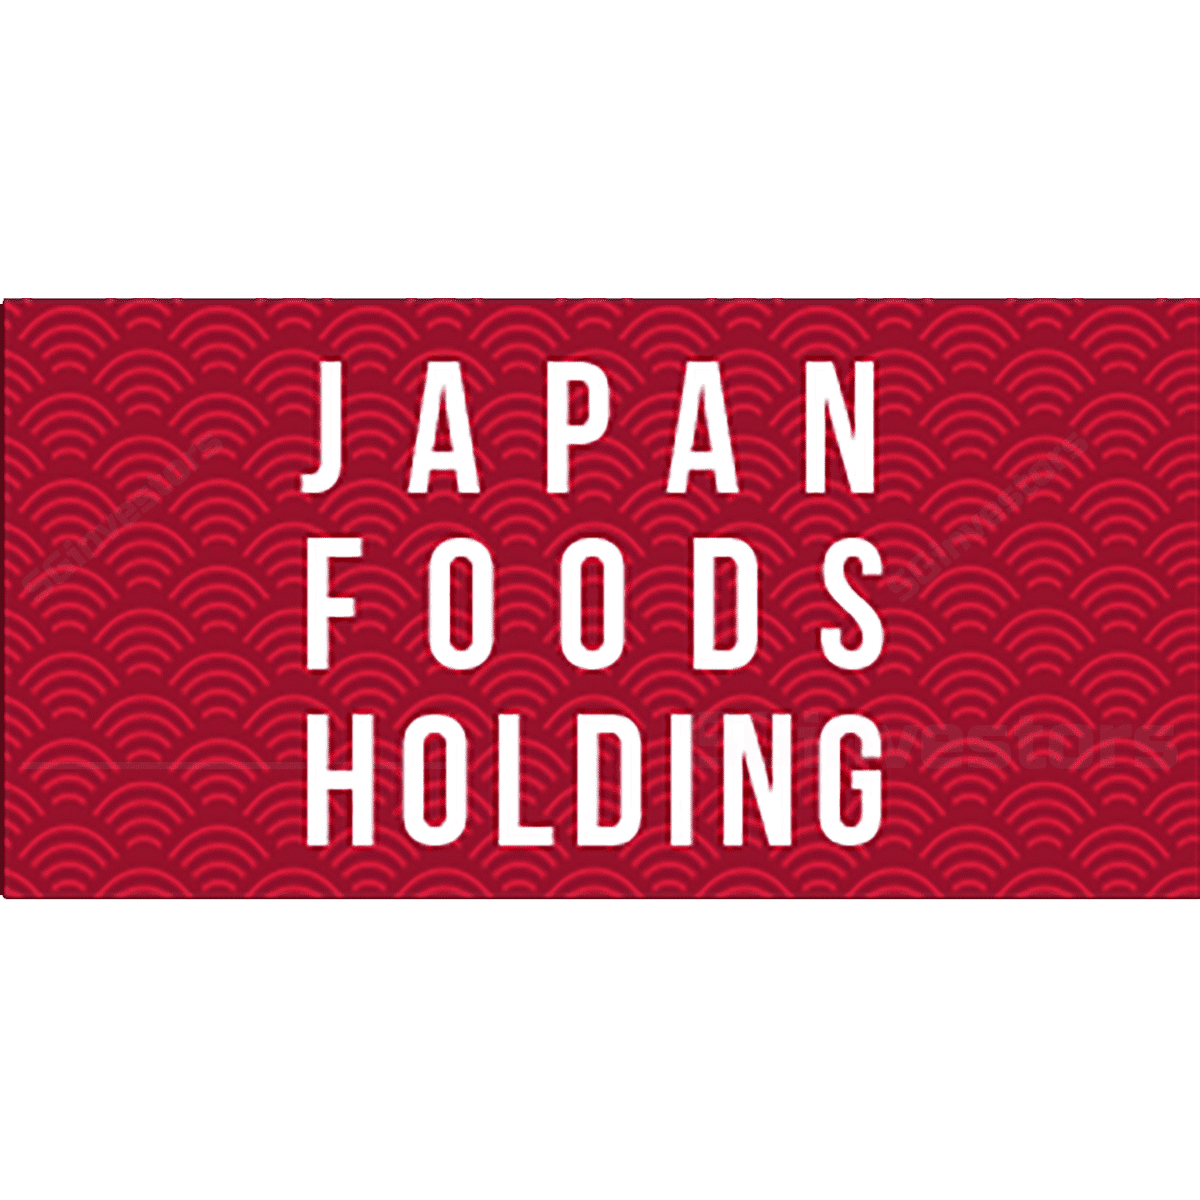 Japan Foods Holding - RHB Invest 2018-05-11: Time To Recognise The Japanese Excellence